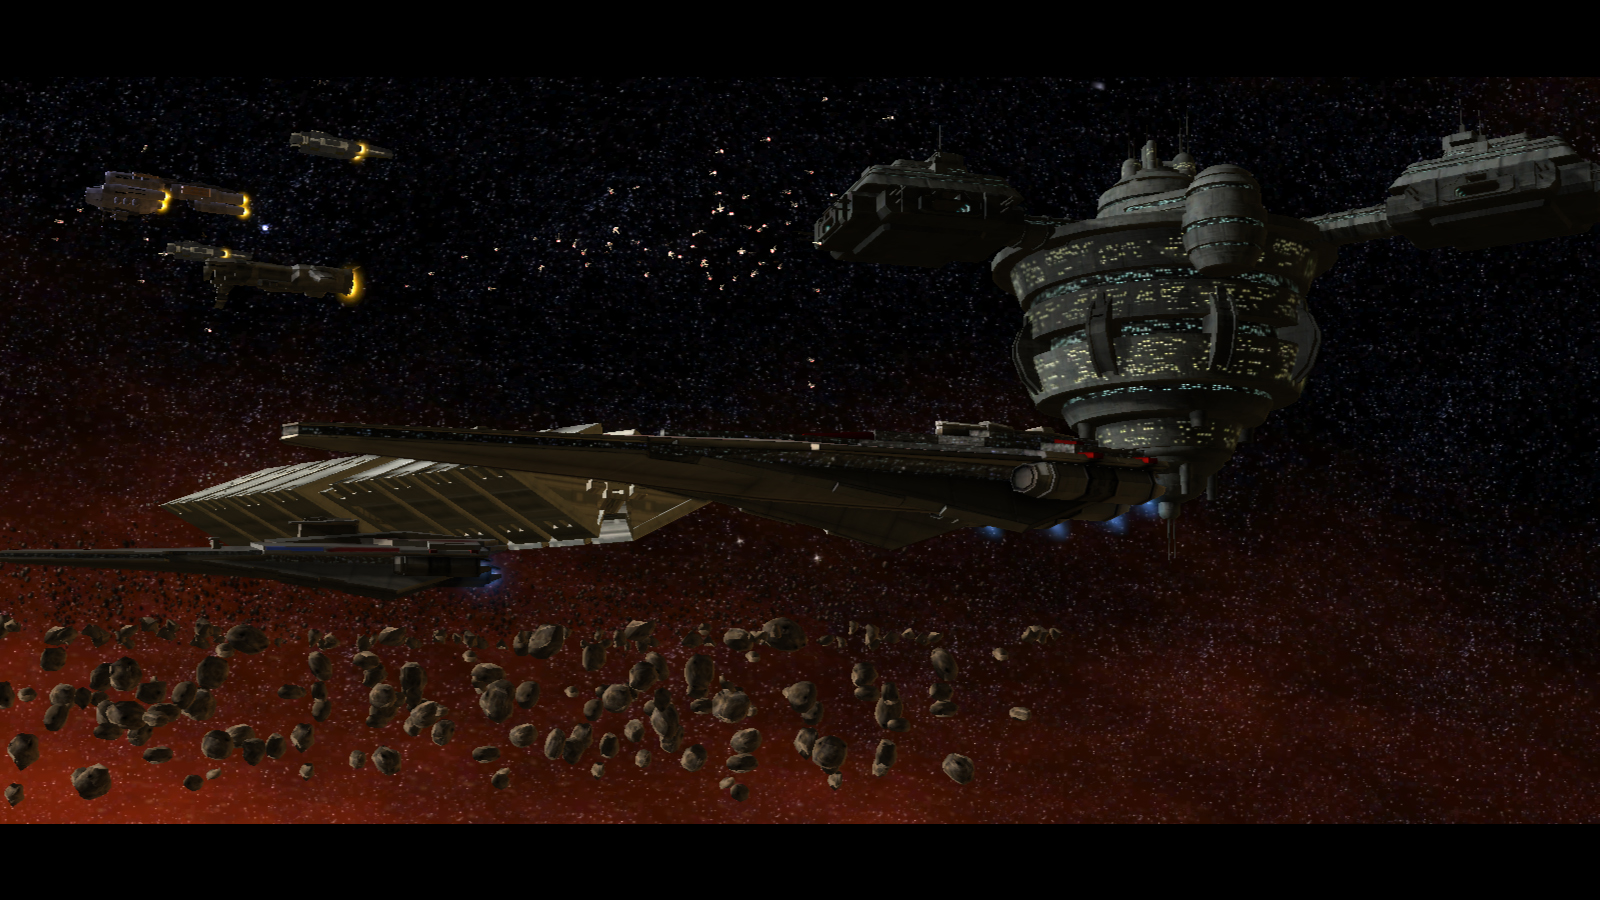 New Republic Fleet Command Hq Image The New Jedi Order Njo Mod For Star Wars Empire At War Forces Of Corruption Mod Db